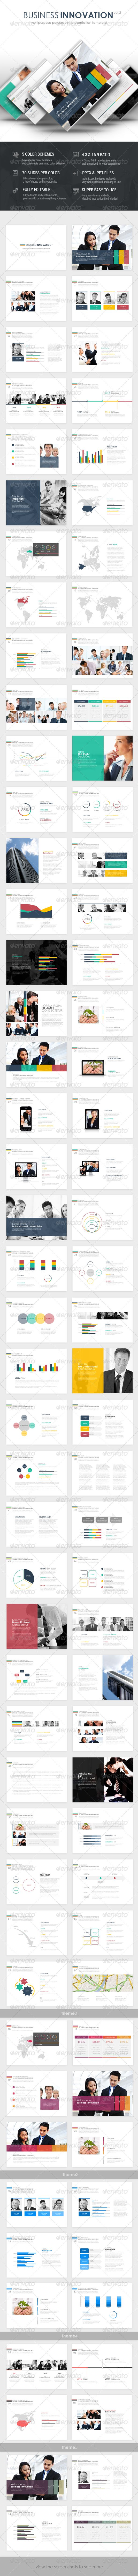 Business Innovation Volume 2 Powerpoint Template - Powerpoint Templates Presentation Templates